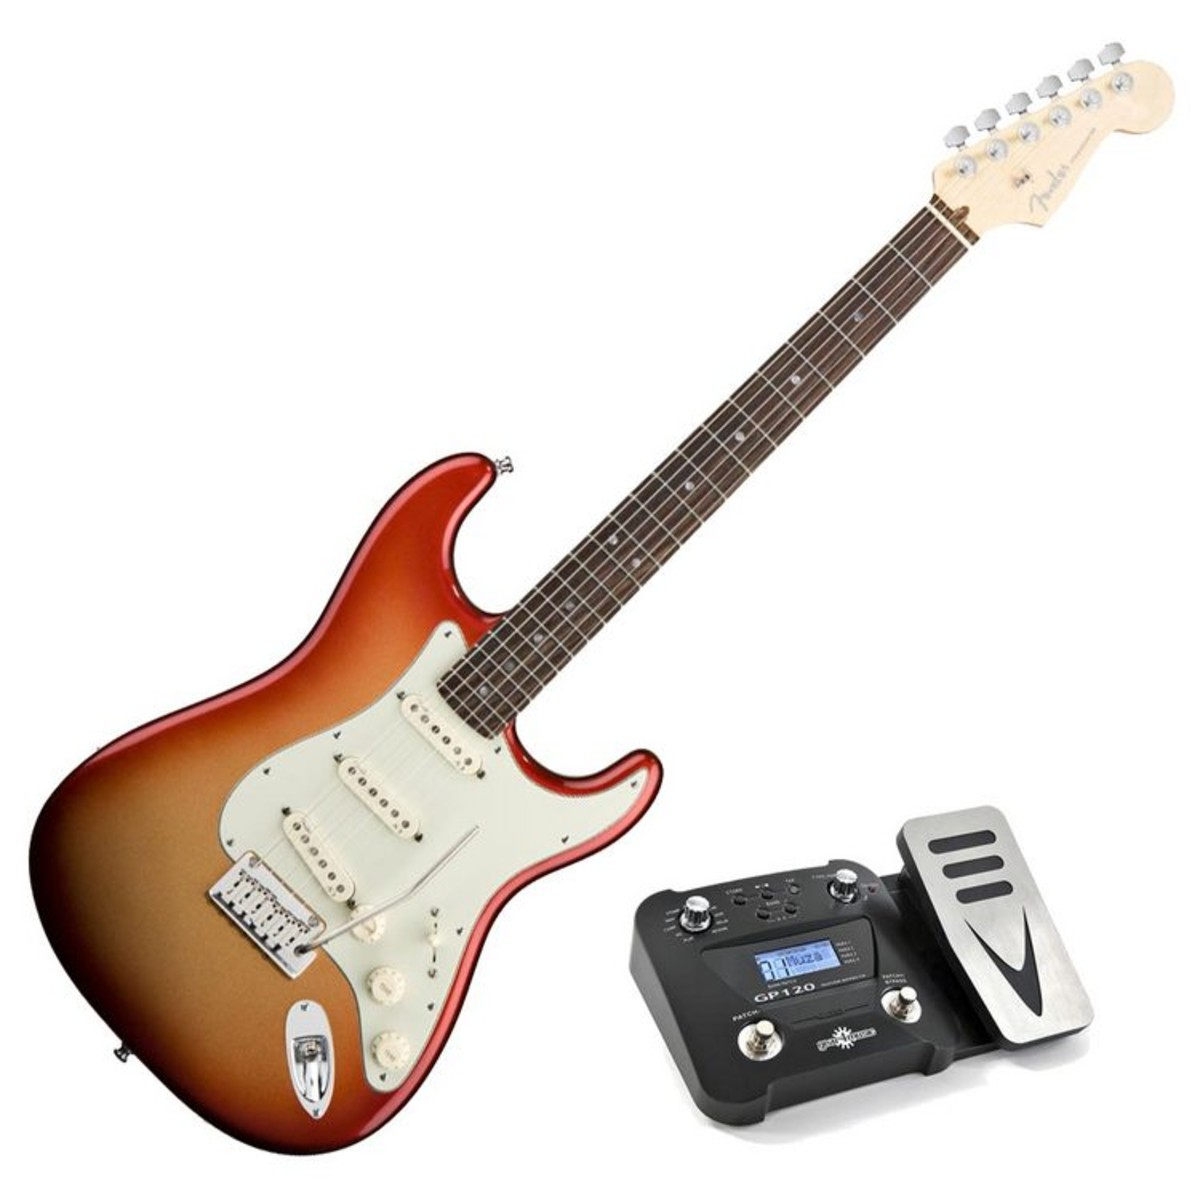 fender american deluxe stratocaster rw sunset metallic pedal pack at gear4music. Black Bedroom Furniture Sets. Home Design Ideas